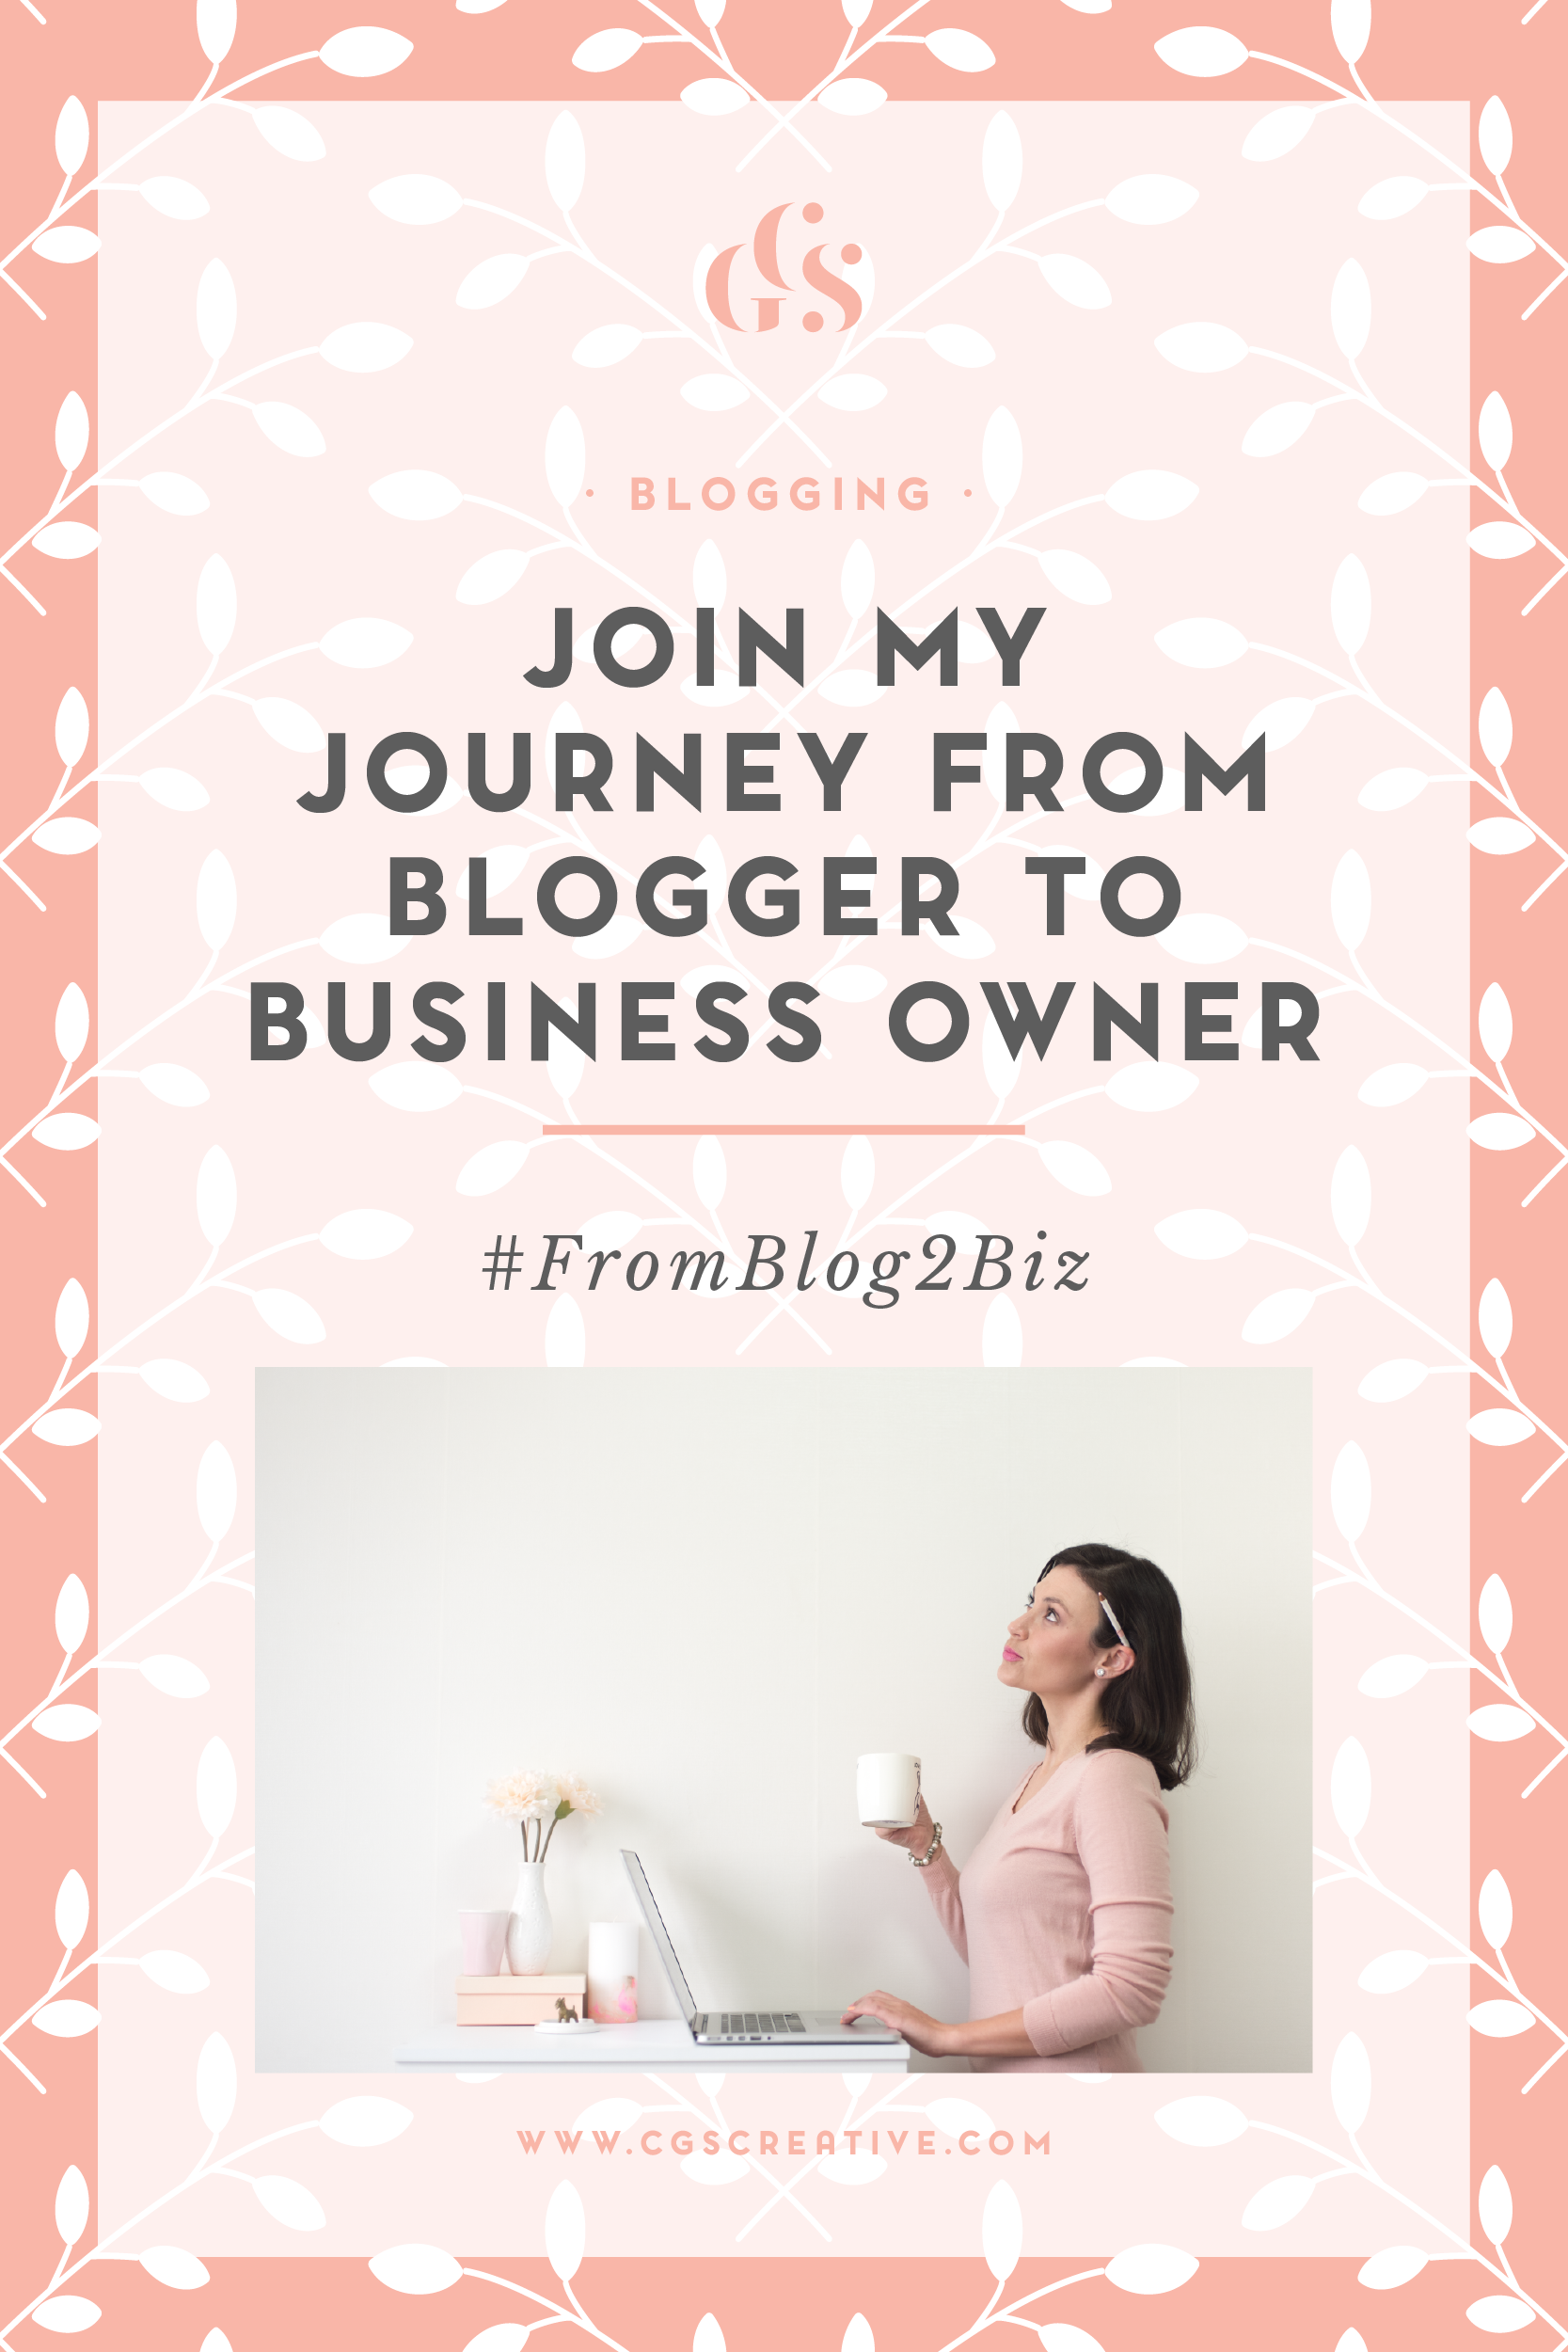 #FromBlog2Biz Journey From Blogger to Creative Business Owner